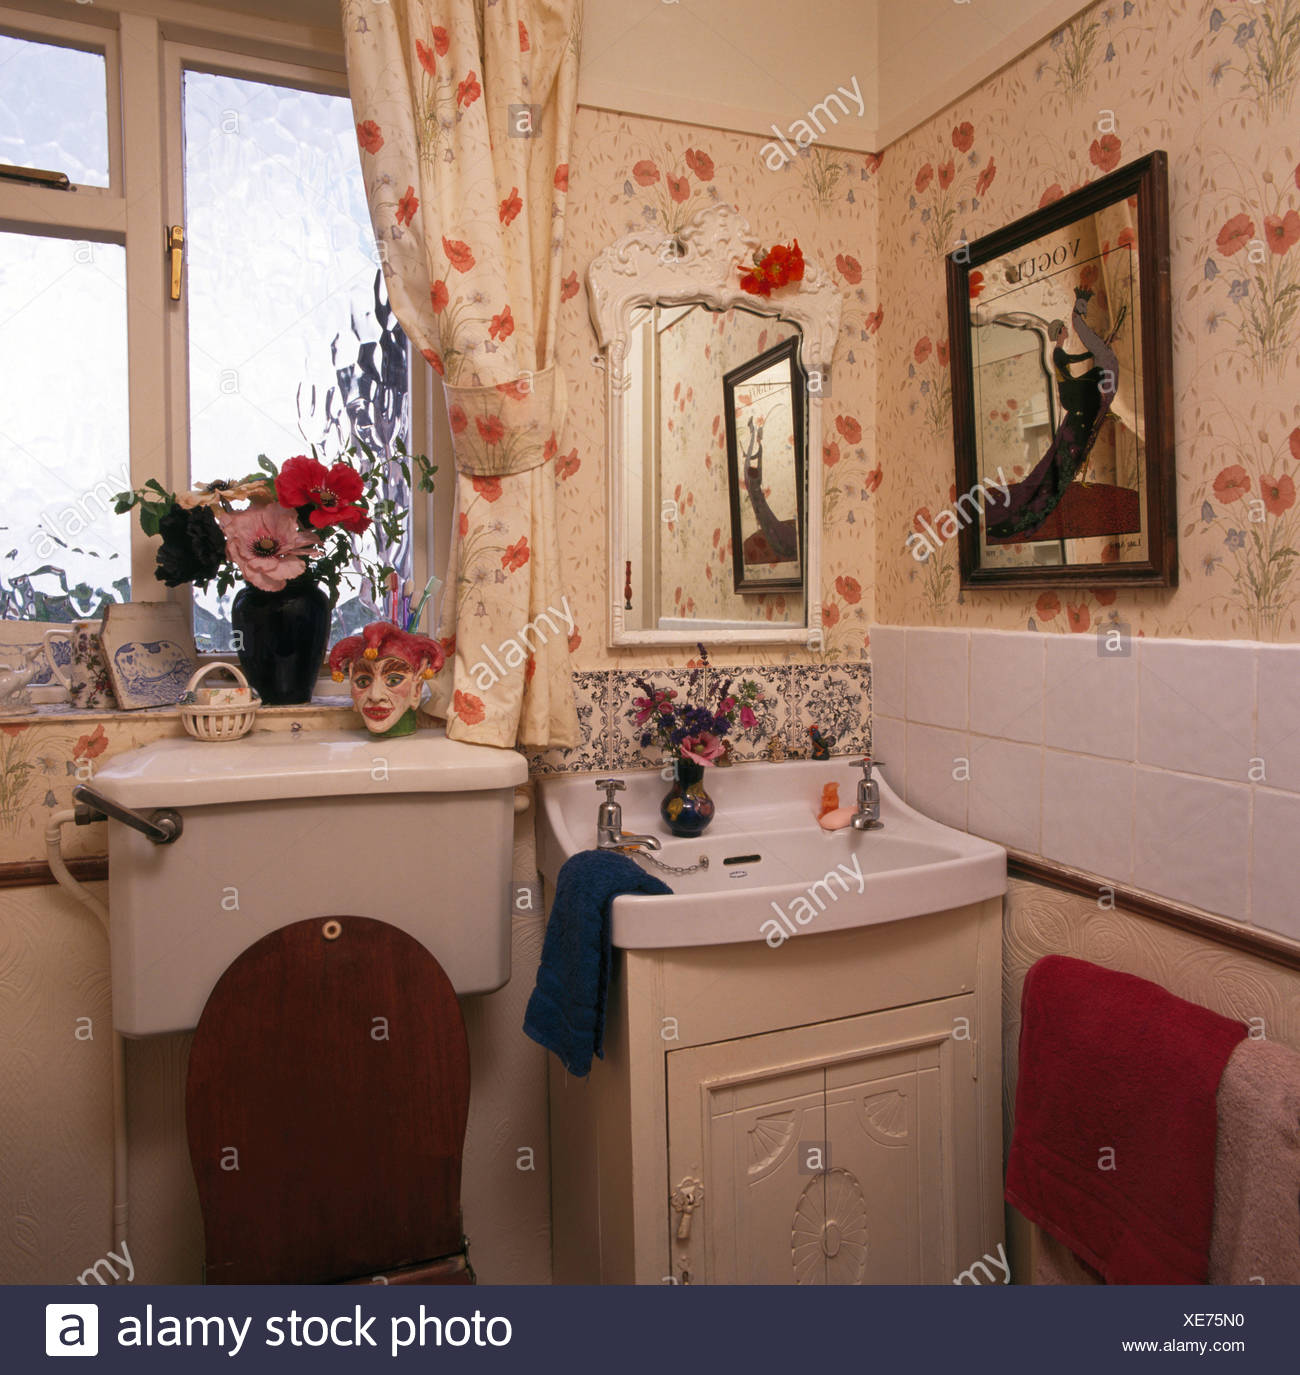 Poppy Print Wallpaper And Curtains In Small Nineties Bathroom With Basin In Fitted Vanity Unit Stock Photo Alamy